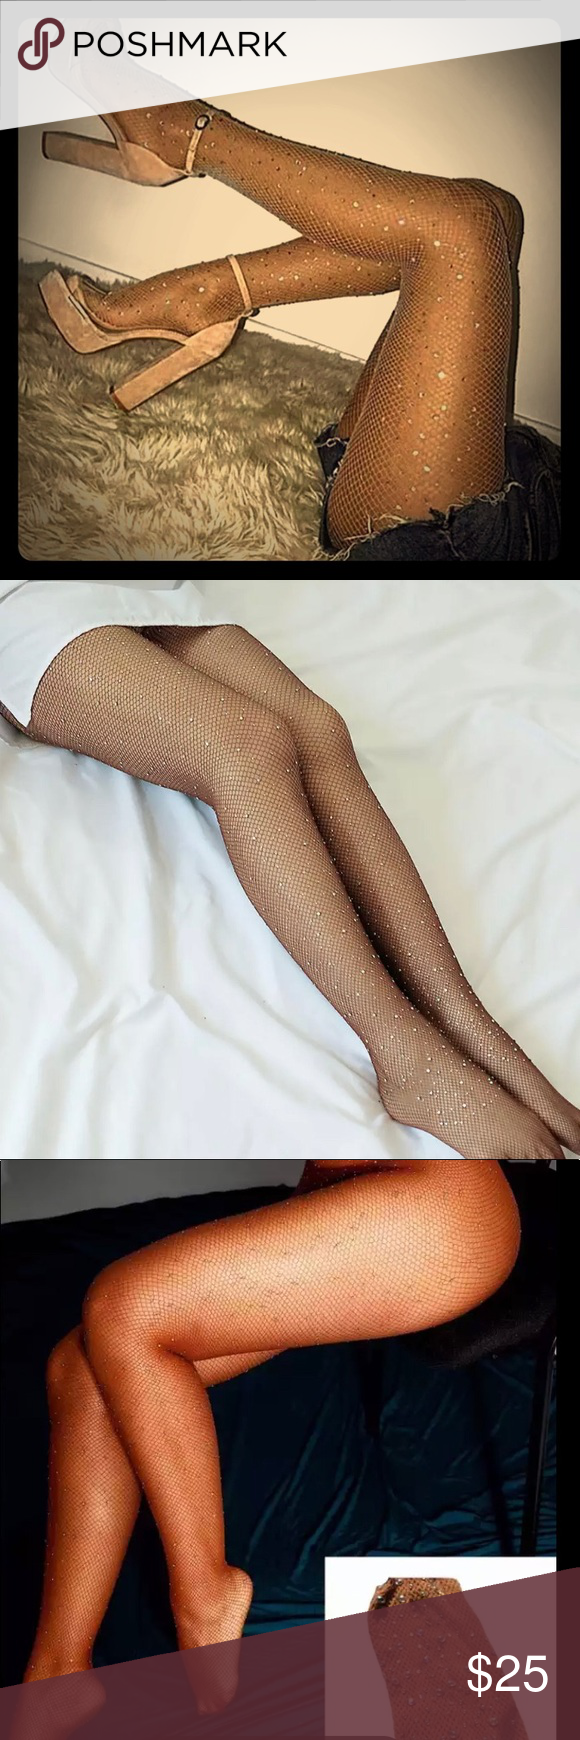 Sold Caramel Shimmering Rhinestone Fishnets Fashion Clothes Design Nylons And Pantyhose